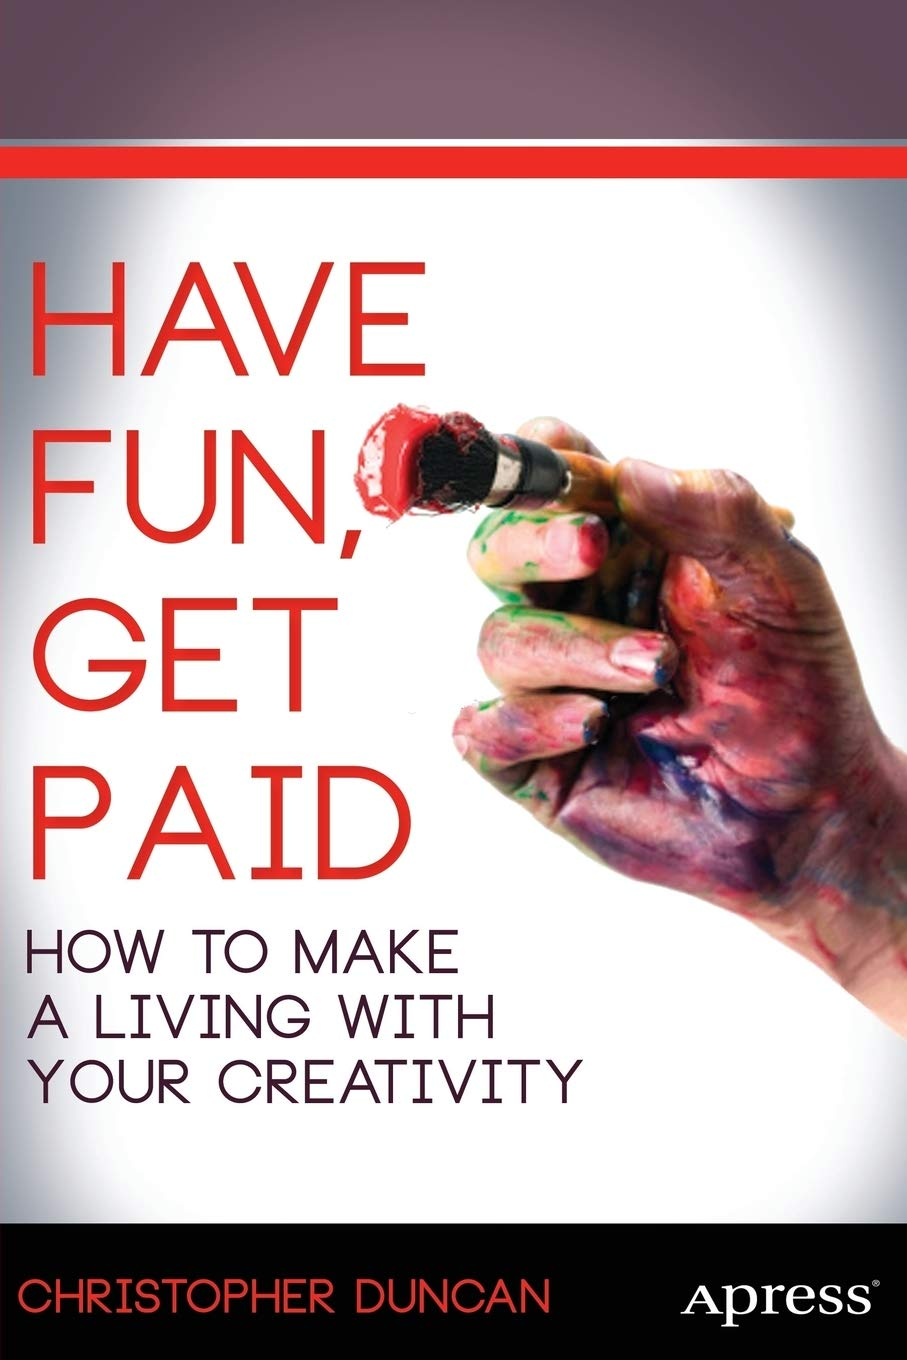 Have Fun Get Paid How To Make A Living With Your Creativity Amazon Co Uk Duncan Christopher 9781430261001 Books